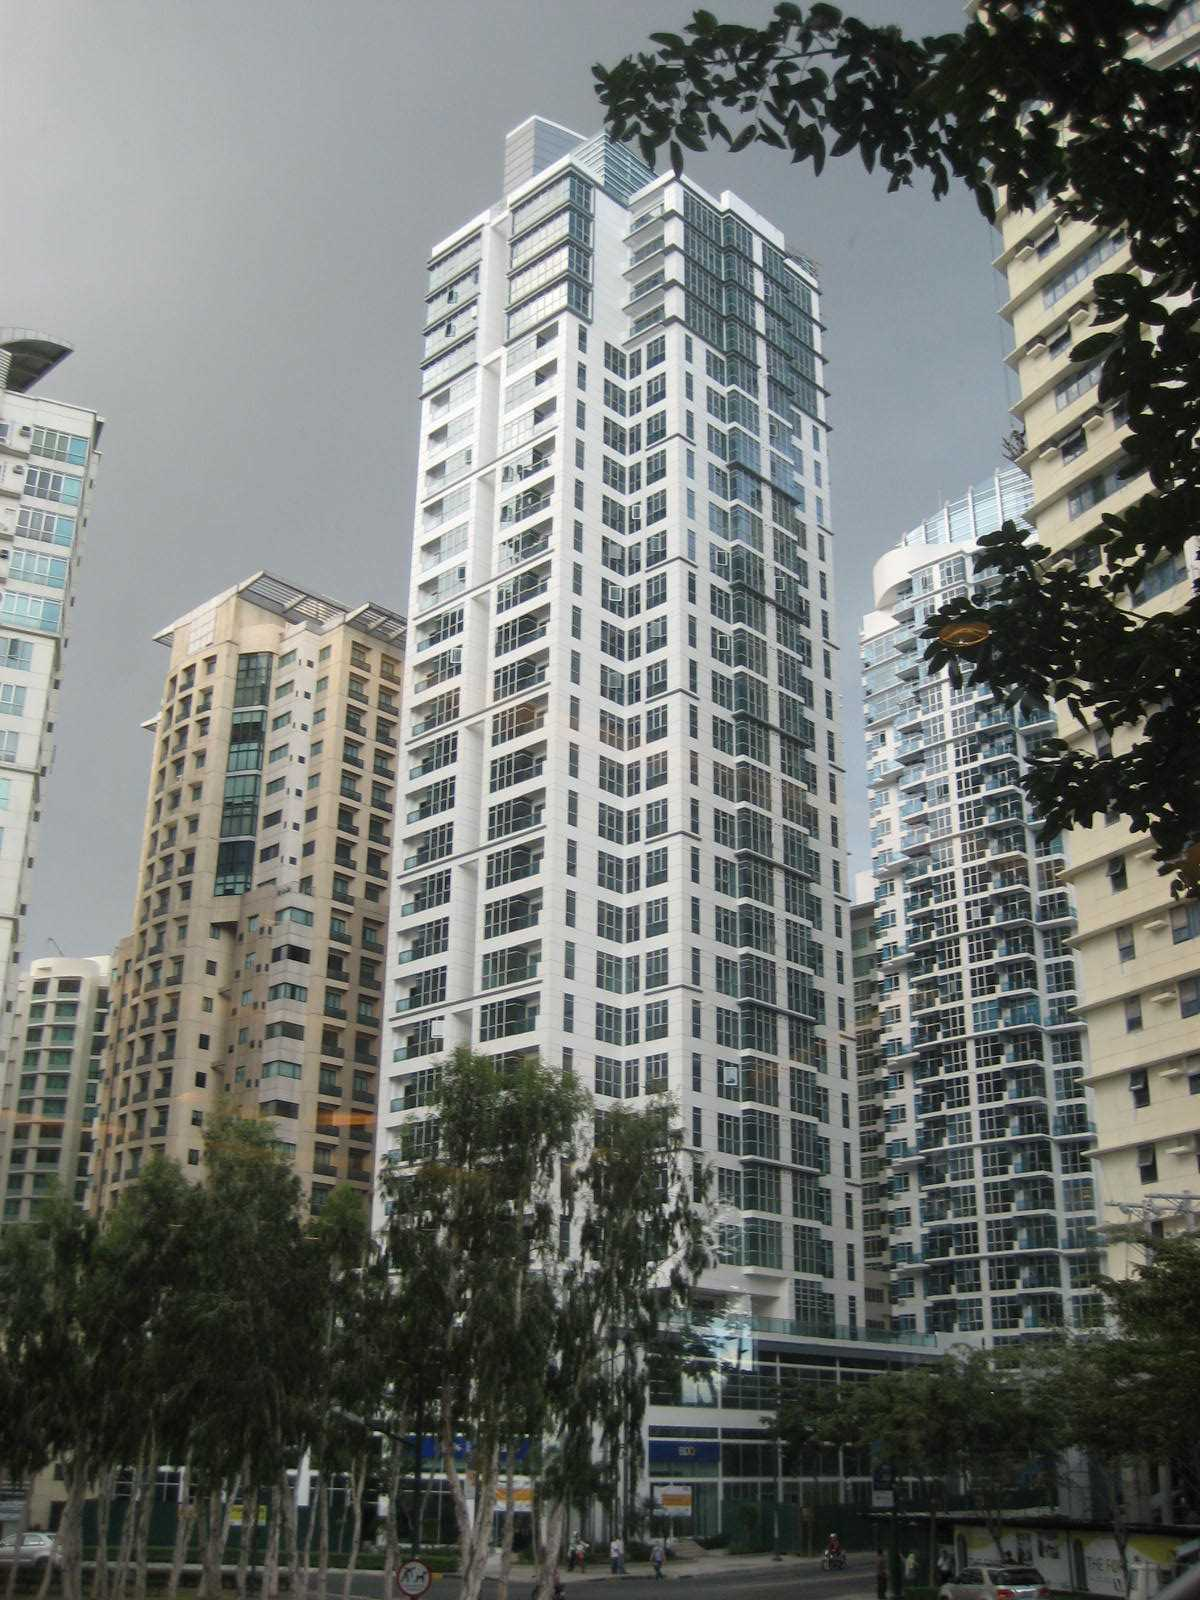 The Crescent Park Residences